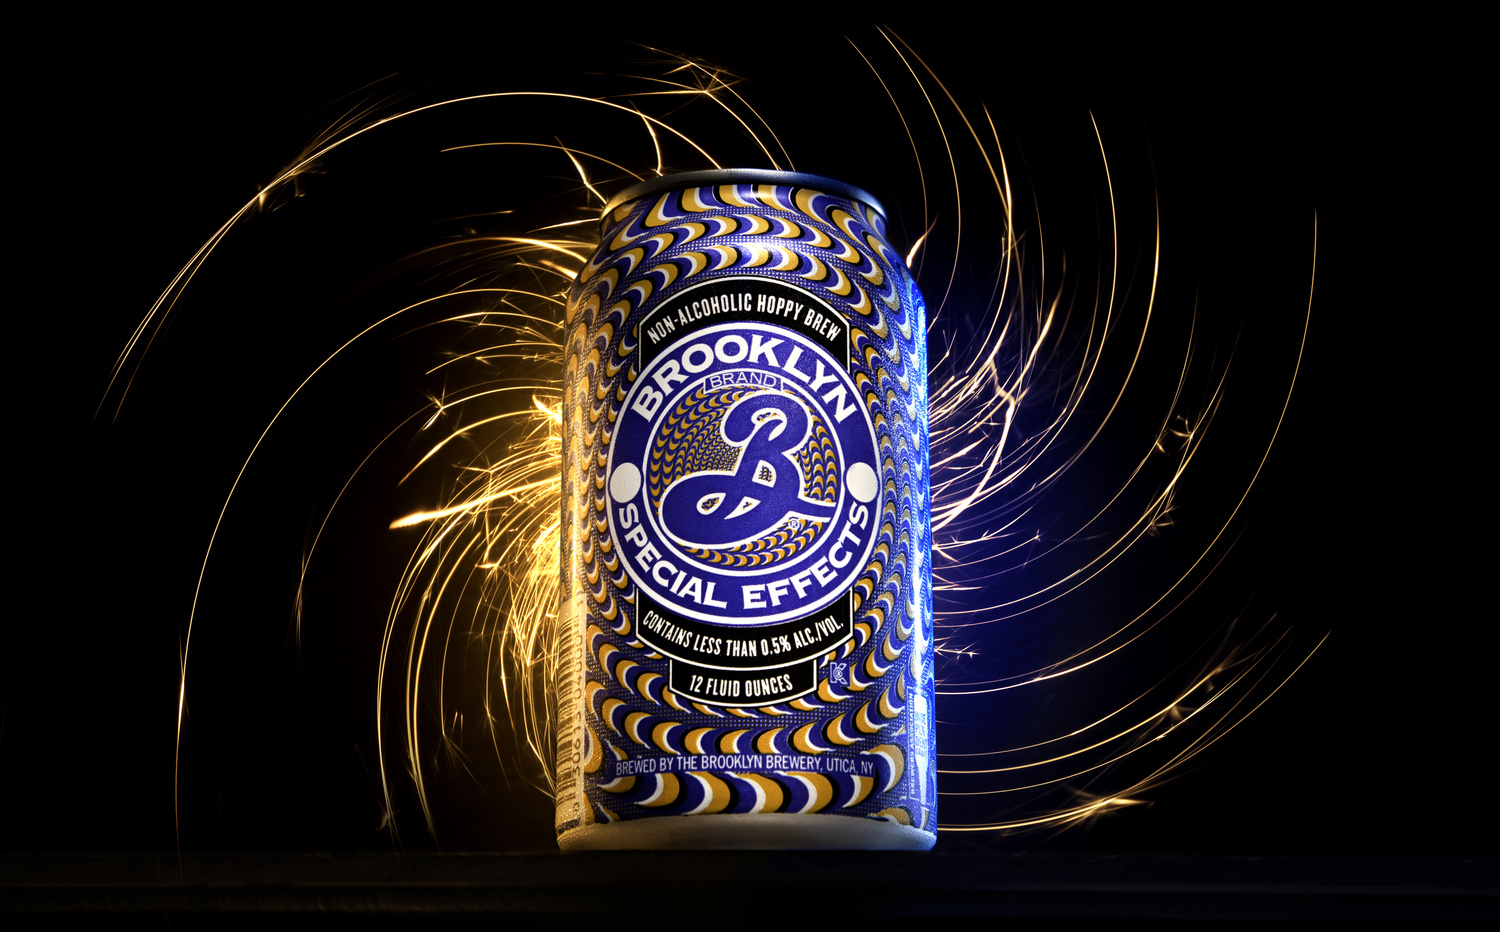 Special Effects by The Brooklyn Brewery by William Twitty